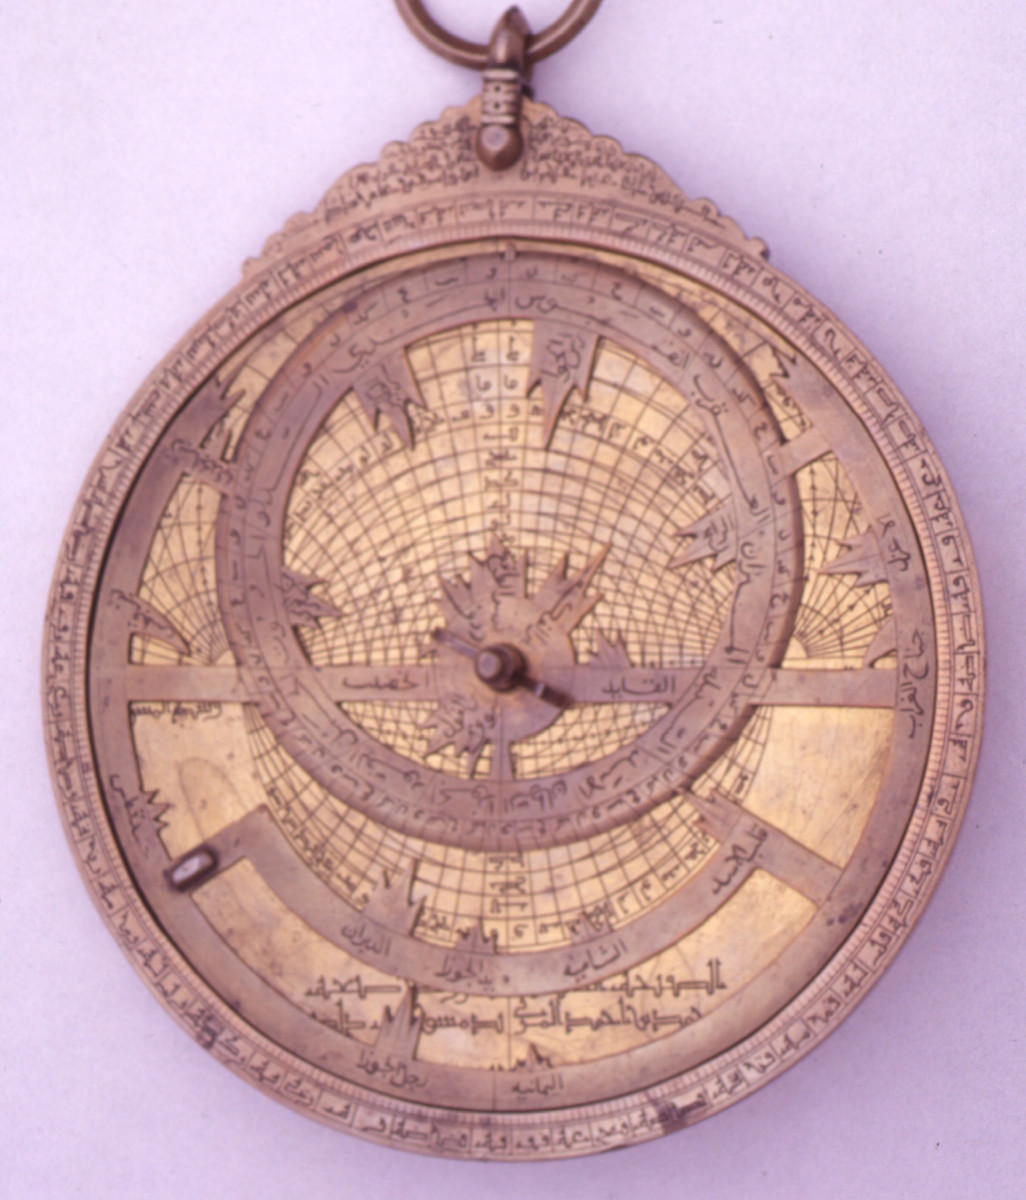 Brass astrolabe of North African origin, dated 1309/10 AD